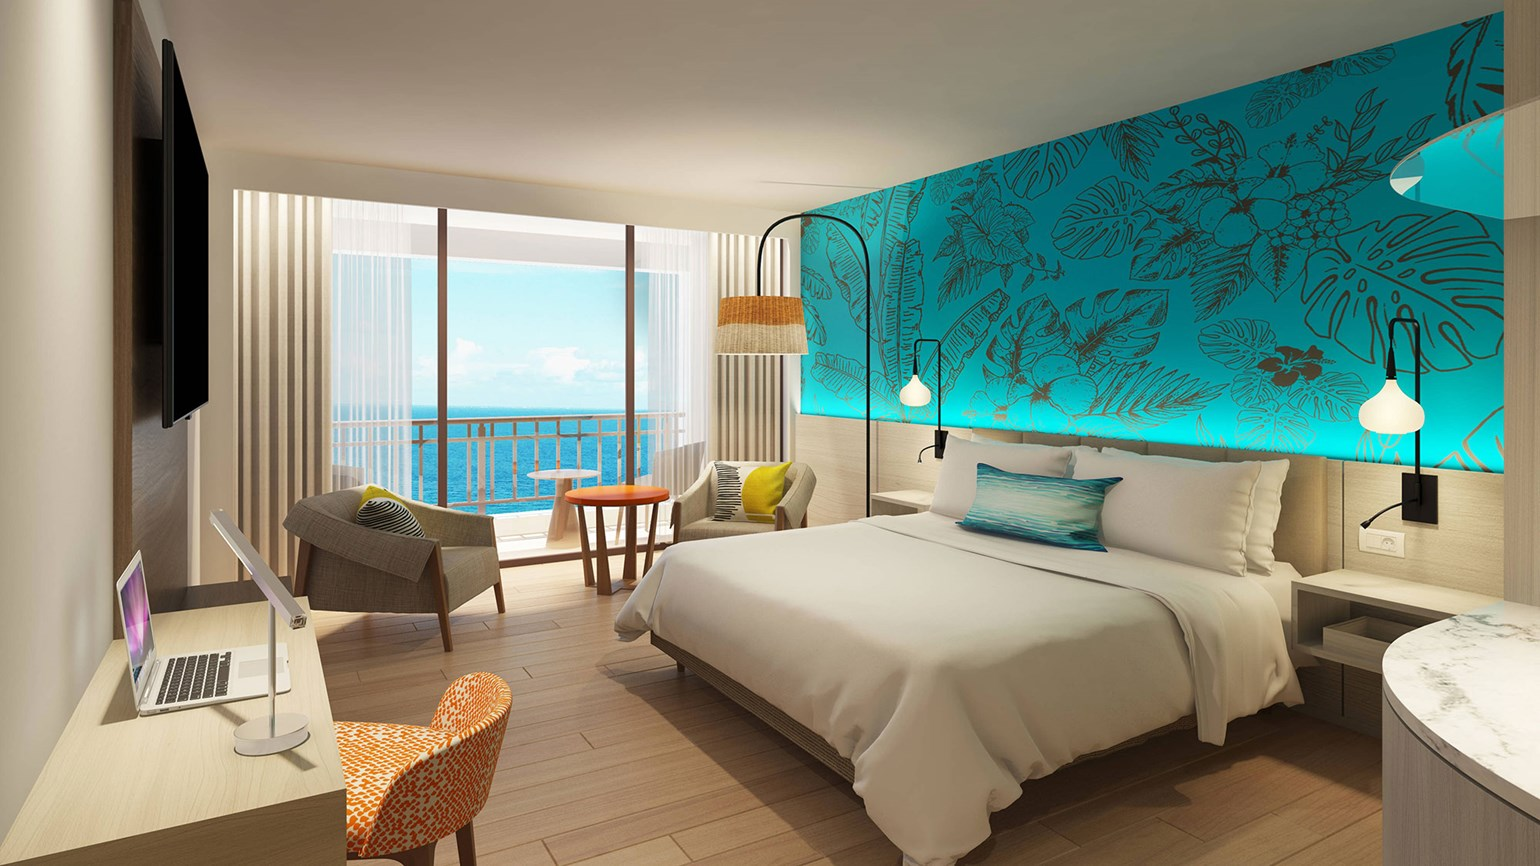 Curacao Marriott reopens after $37 million renovation